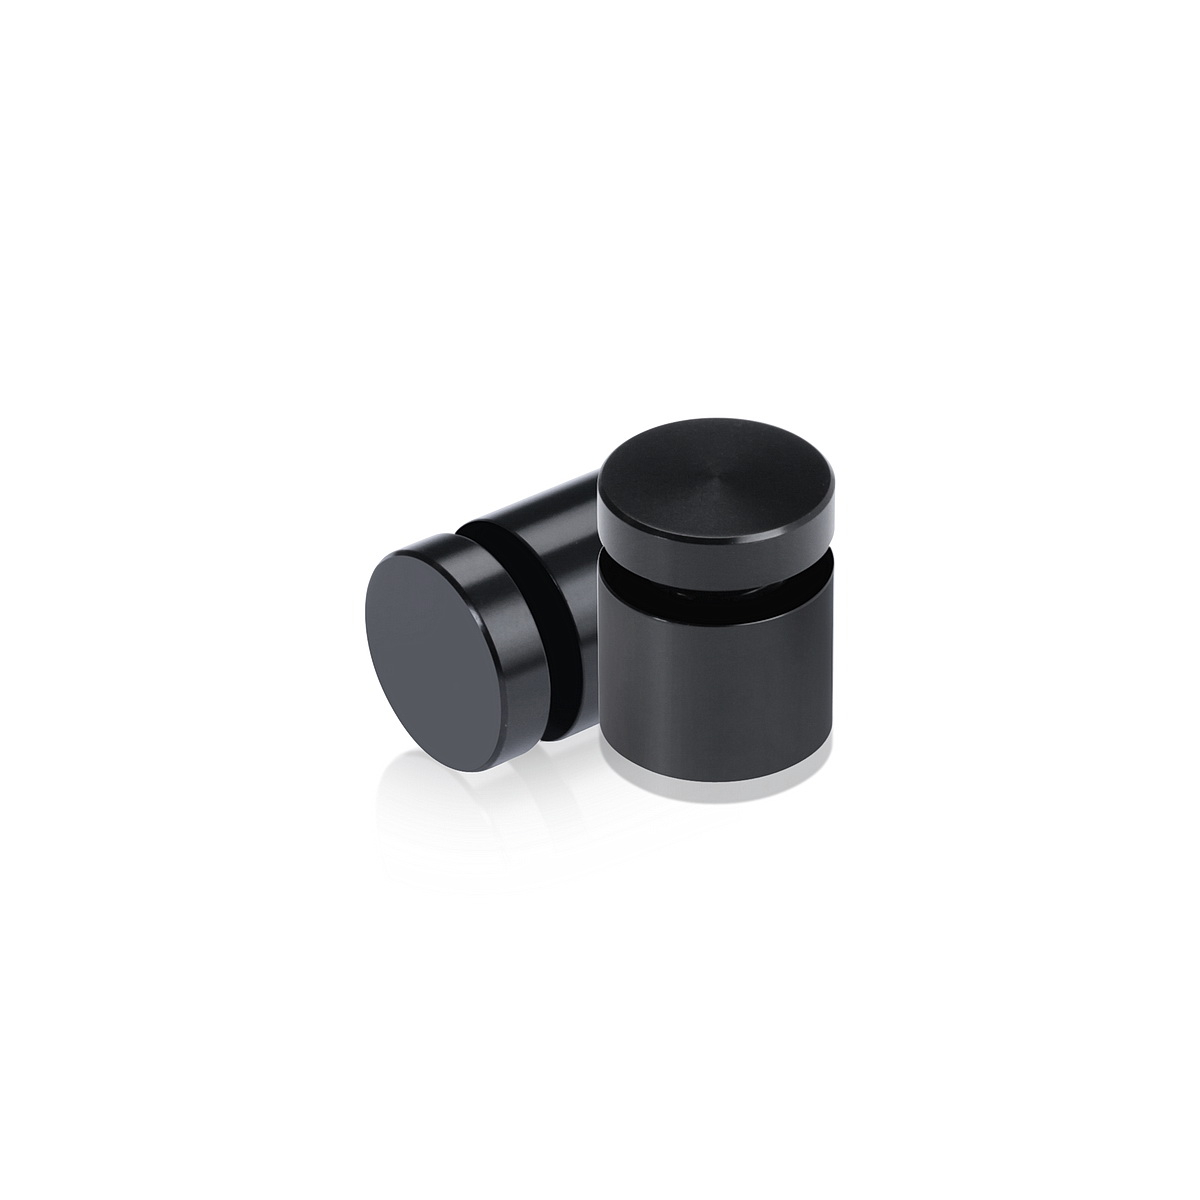 Affordable Aluminum Standoffs, Diameter: 5/8'', Standoff:  1/2'', Aluminum Black Finish